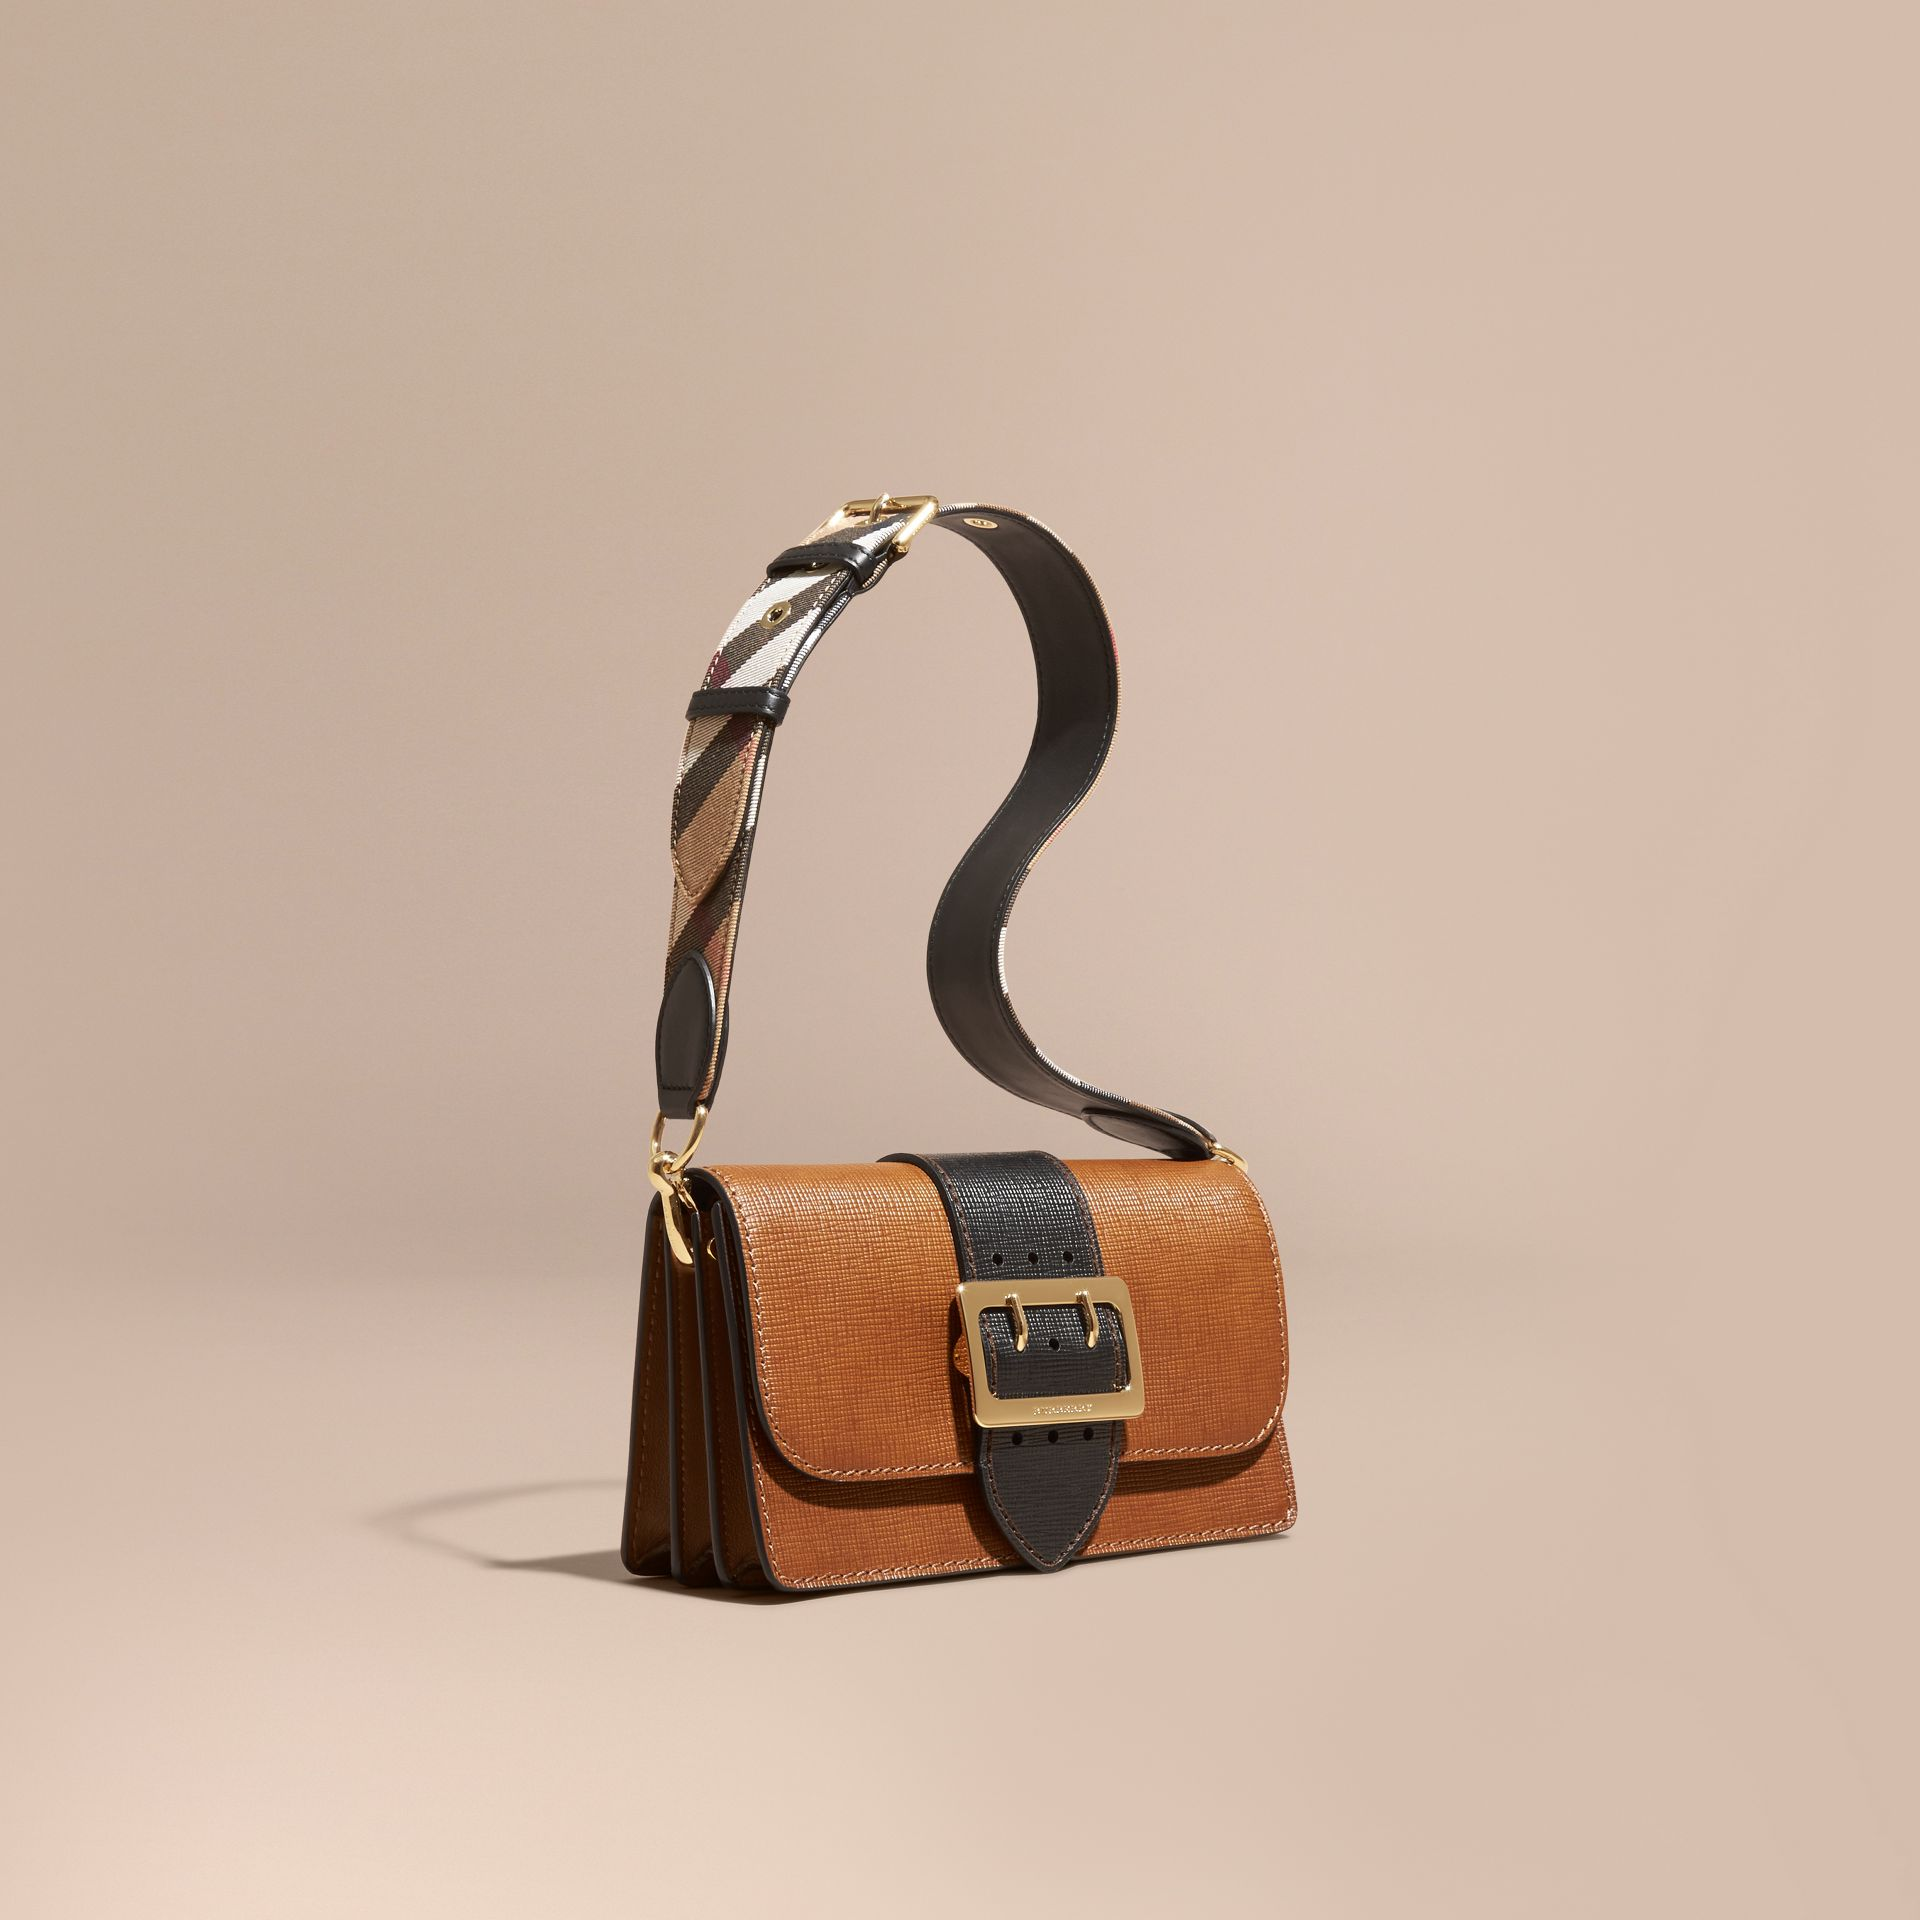 Tan/black The Medium Buckle Bag in Textured Leather Tan/black - gallery image 1